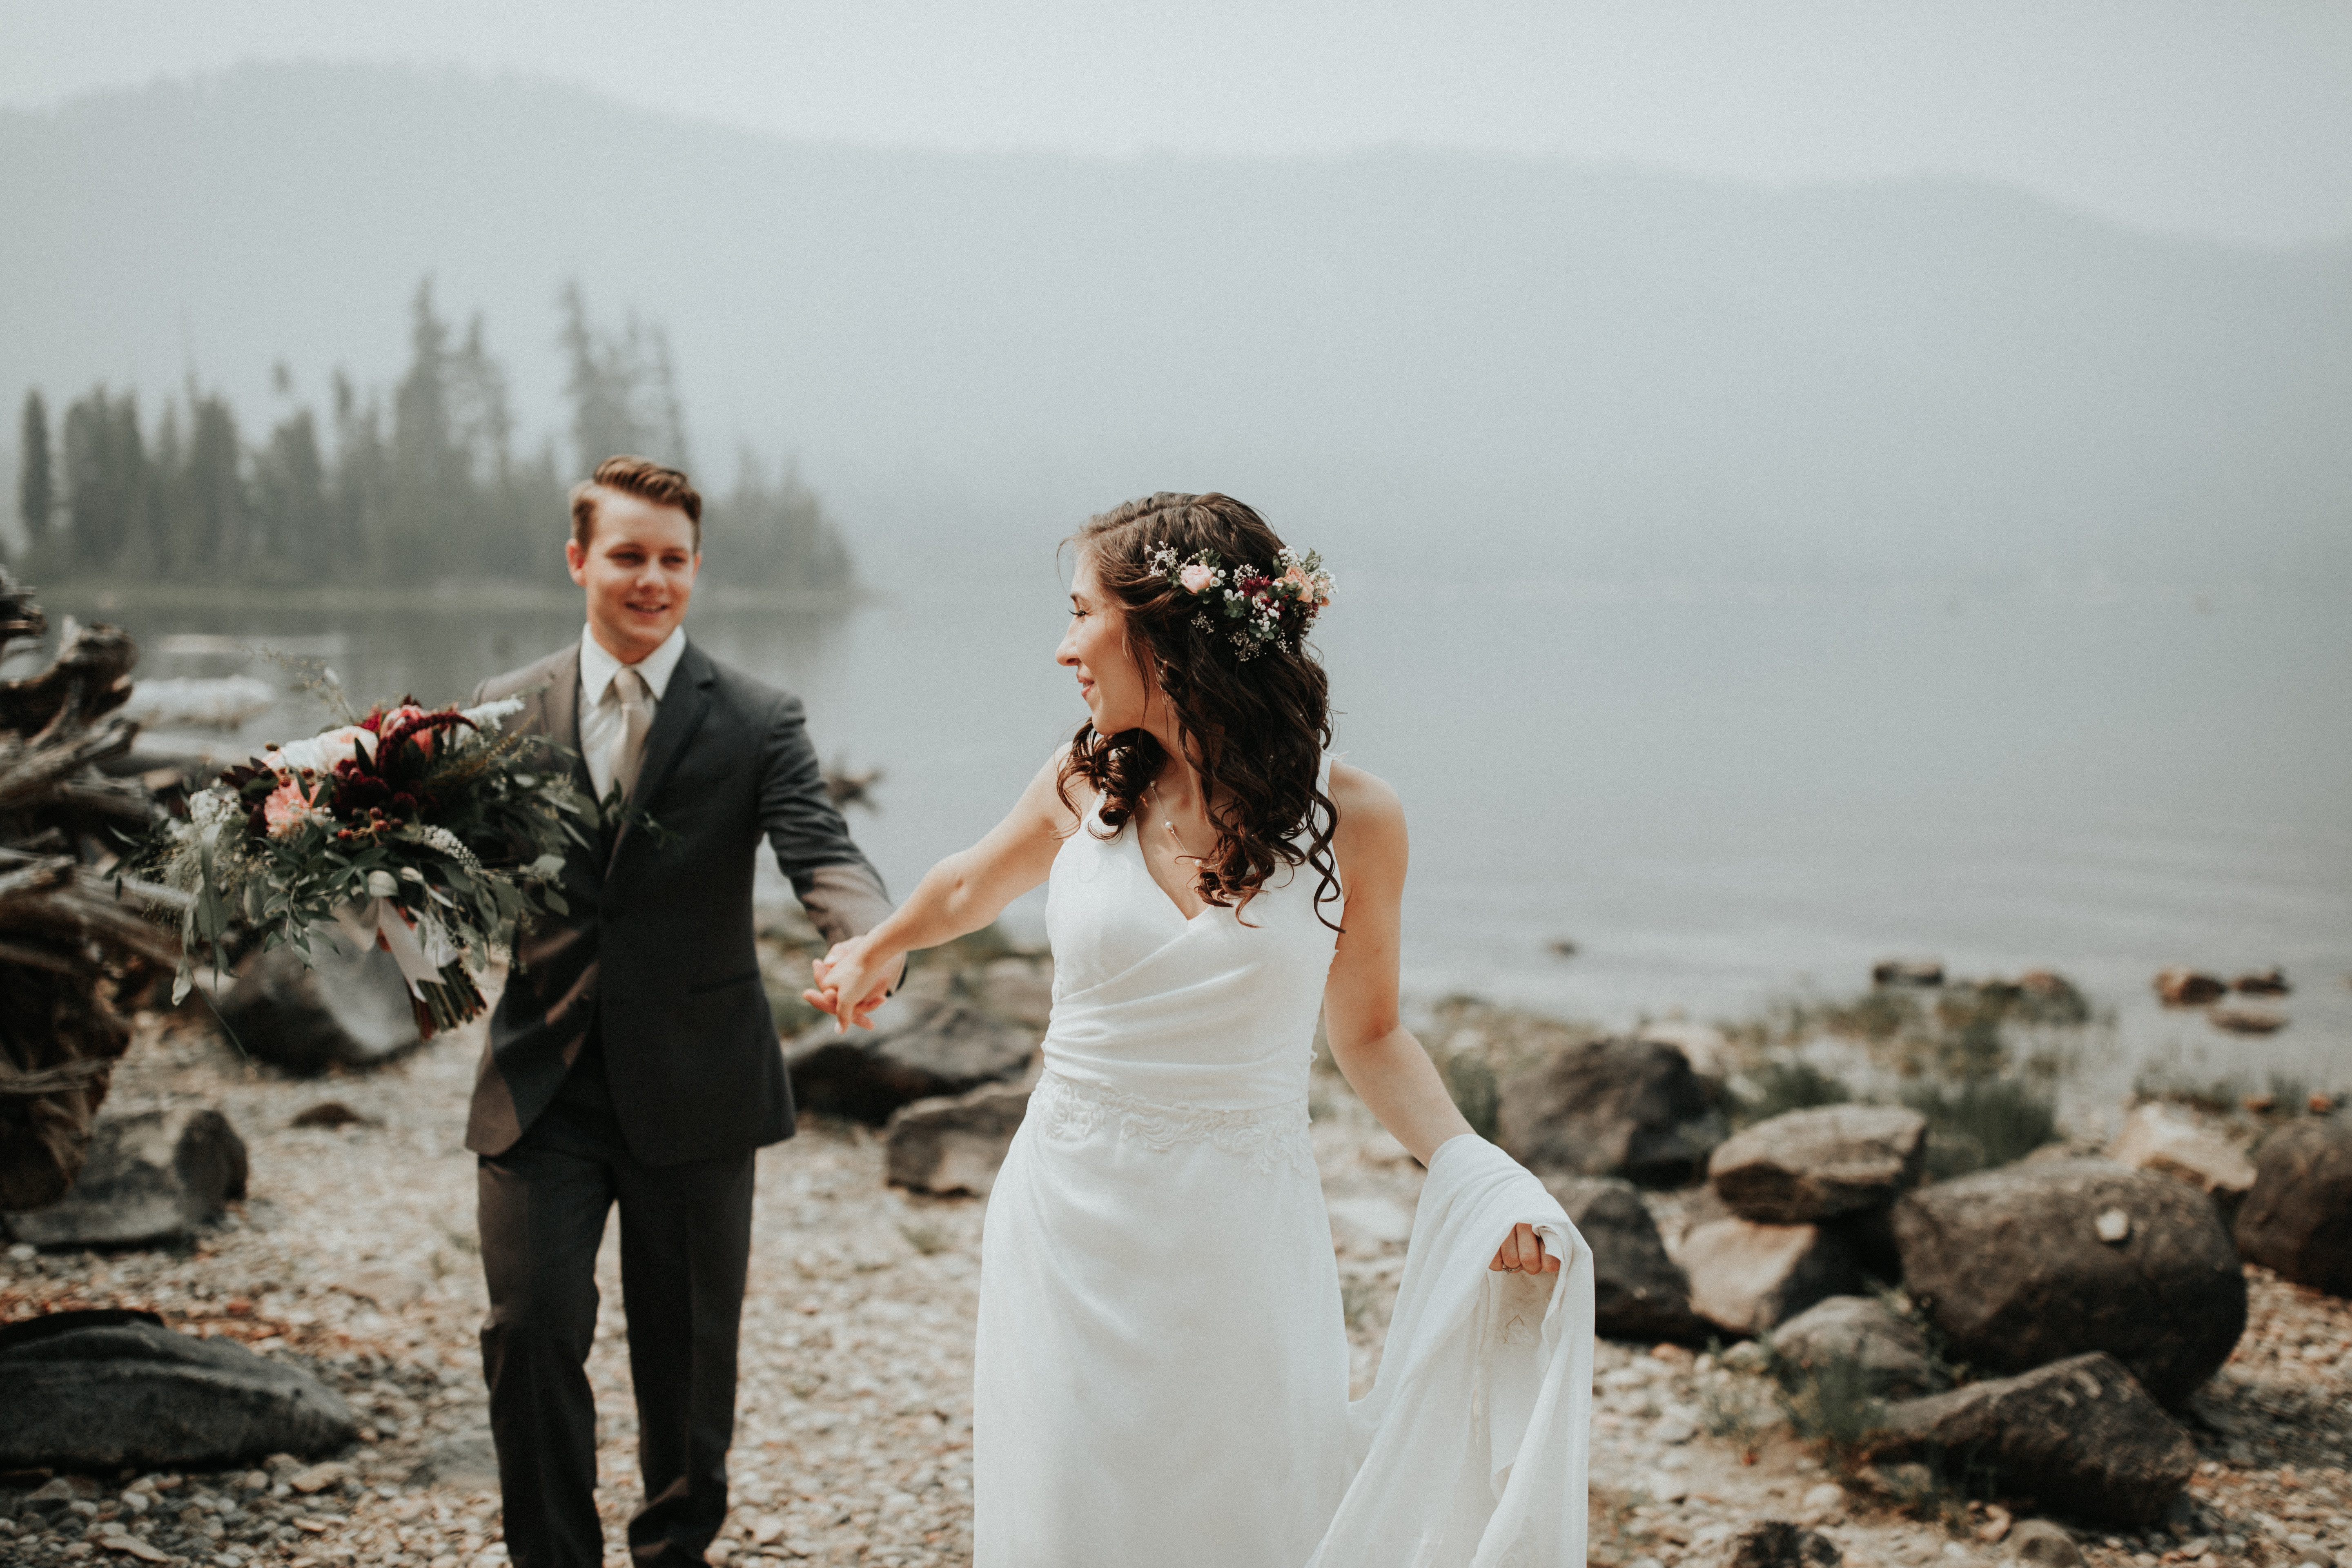 young couple on a beach in wedding dress and tuxedo